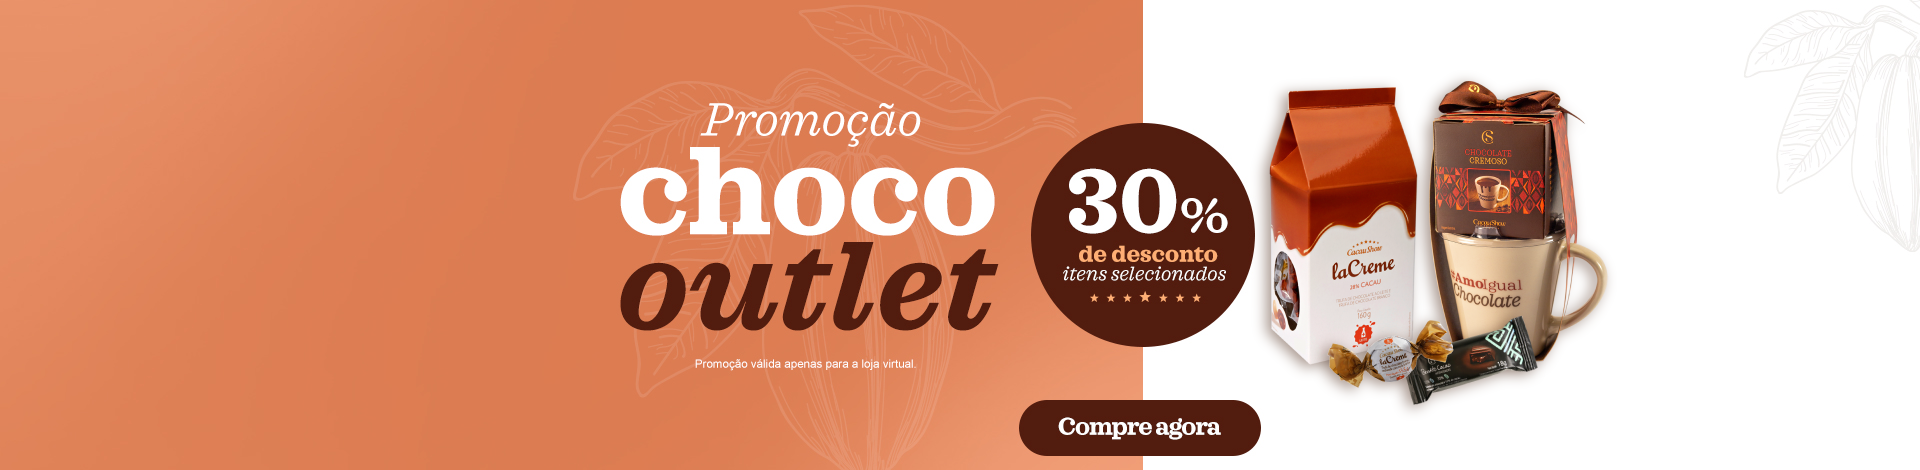 Choco-Outlet3